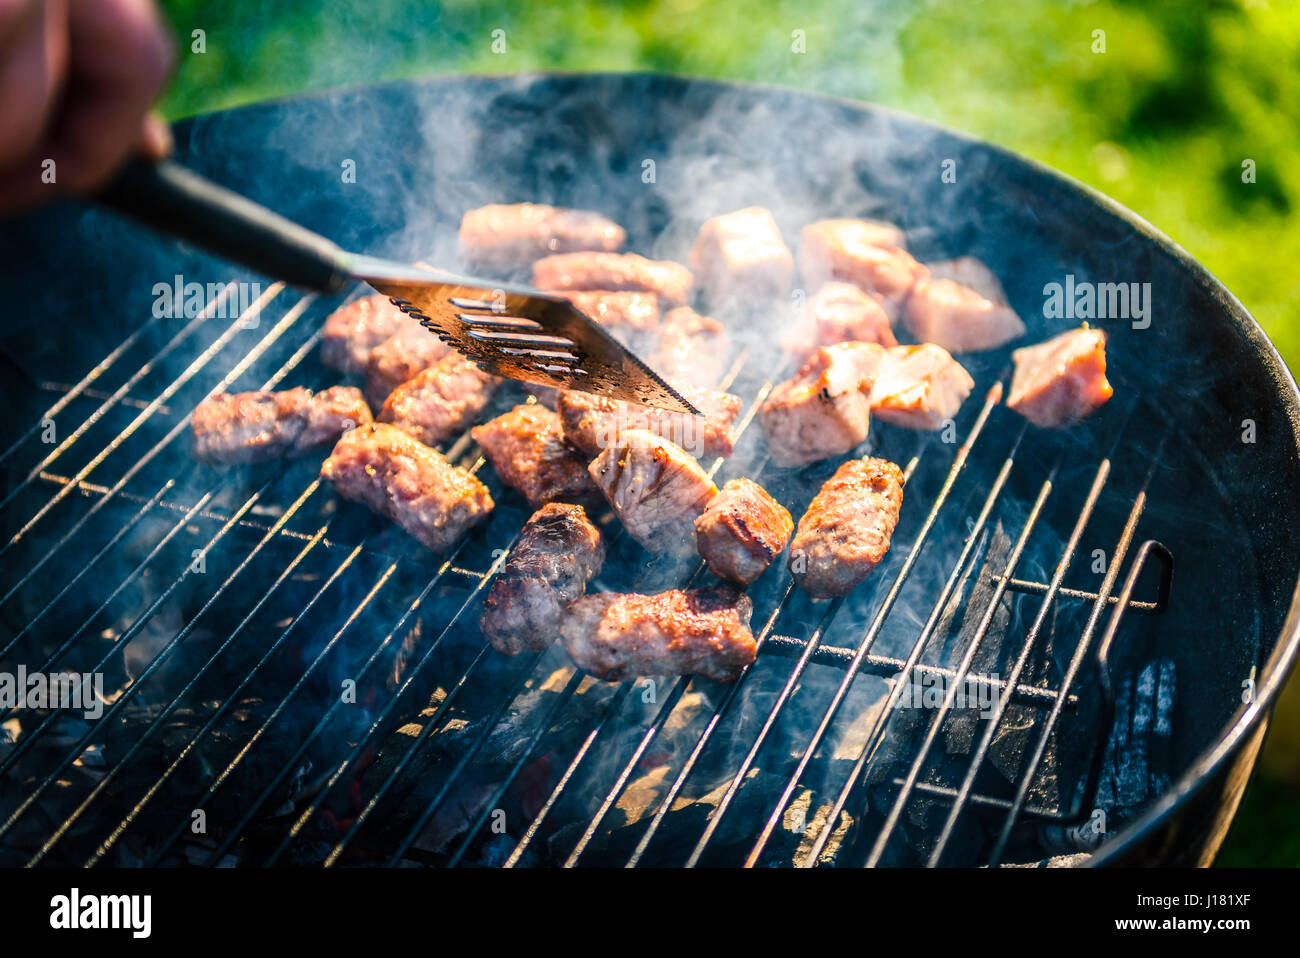 grilling delicious variety of meat on barbecue charcoal grill